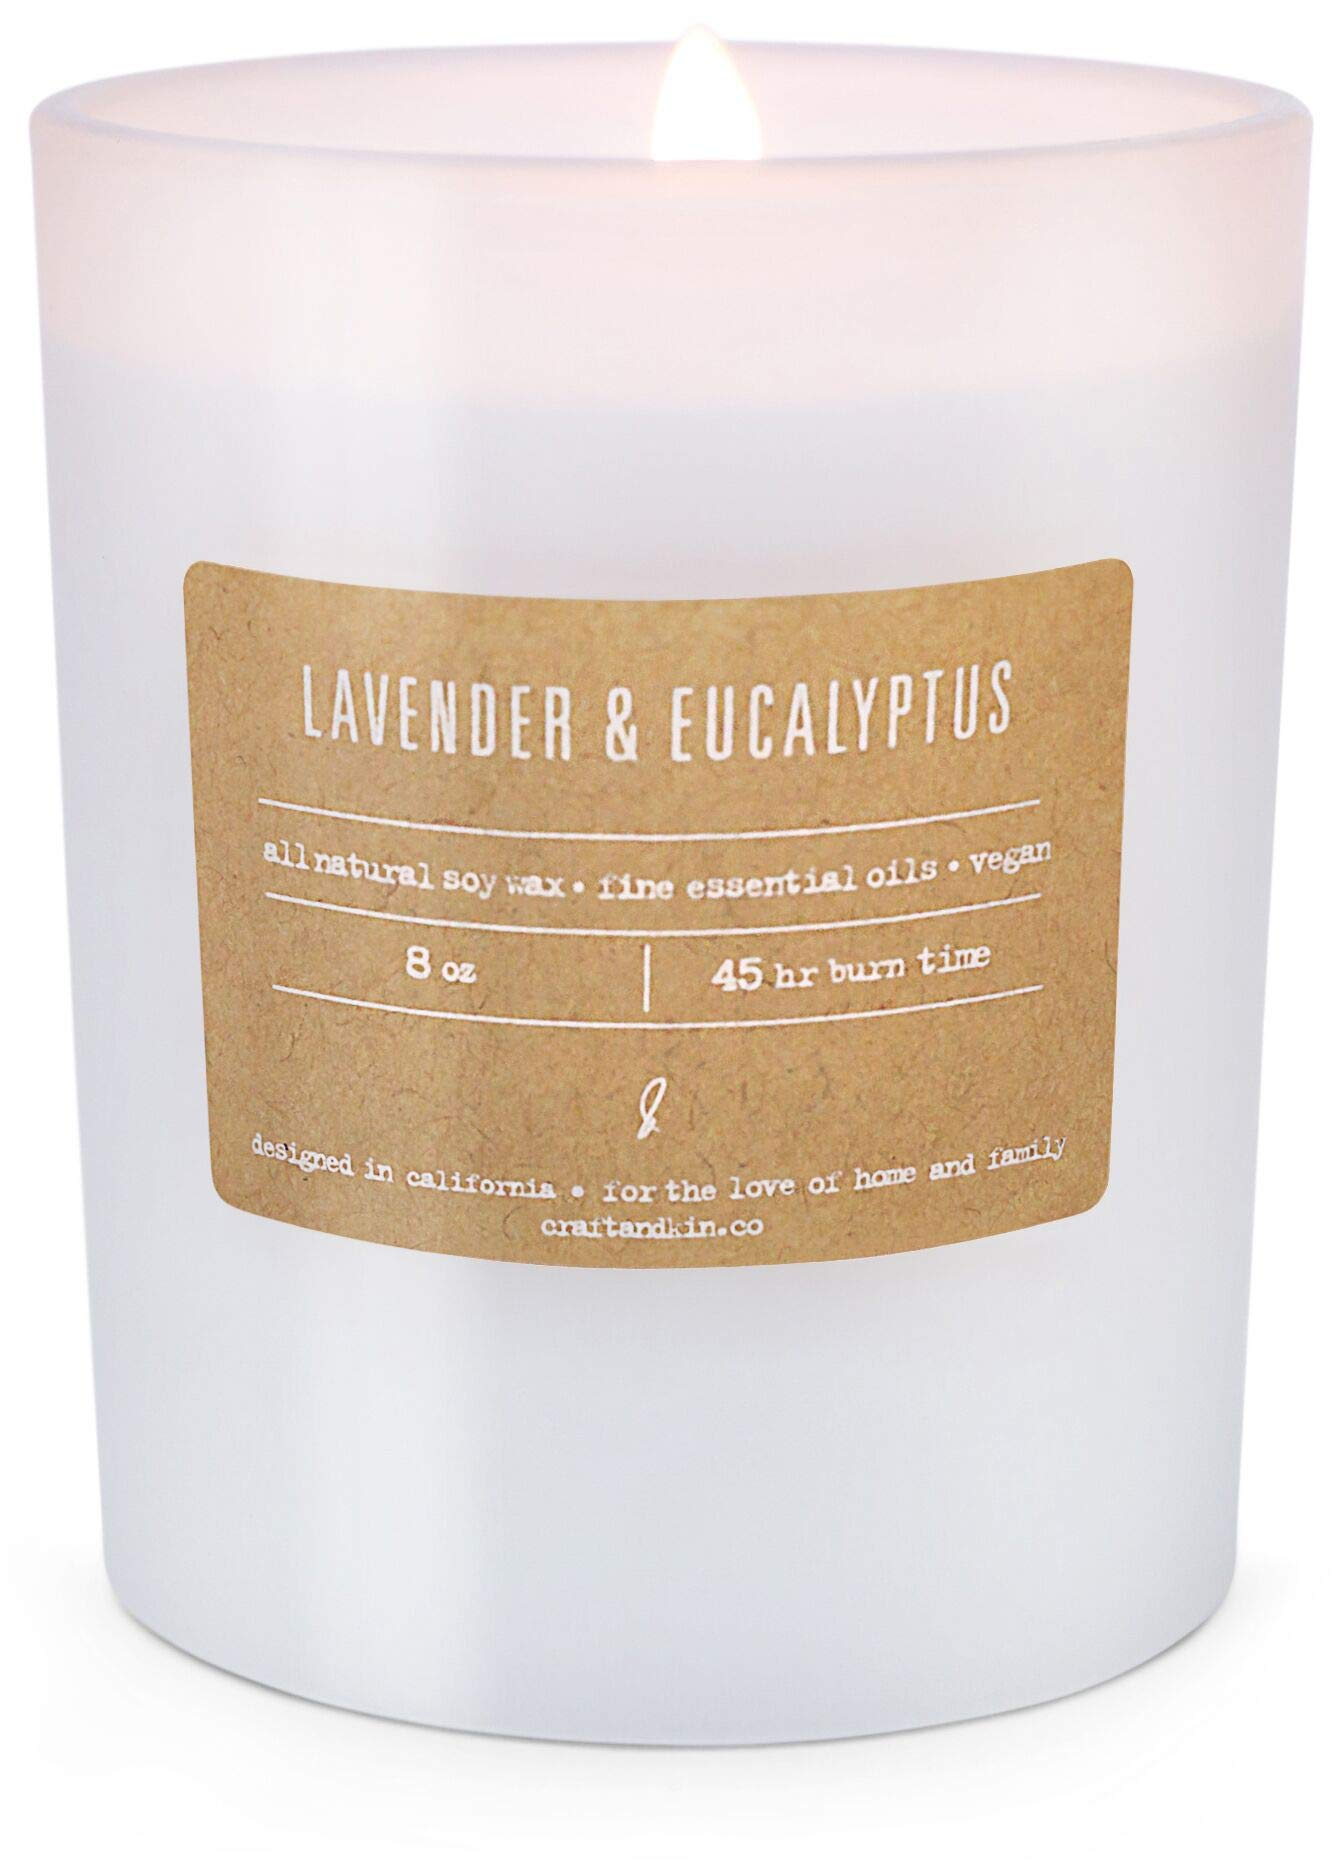 Long Lasting Candles Luxury Candles - Soy Candles Scented Candle Gift Set Candles Aromatherapy White Candle Frosted Glass Jar ( Lavender & Eucalyptus )